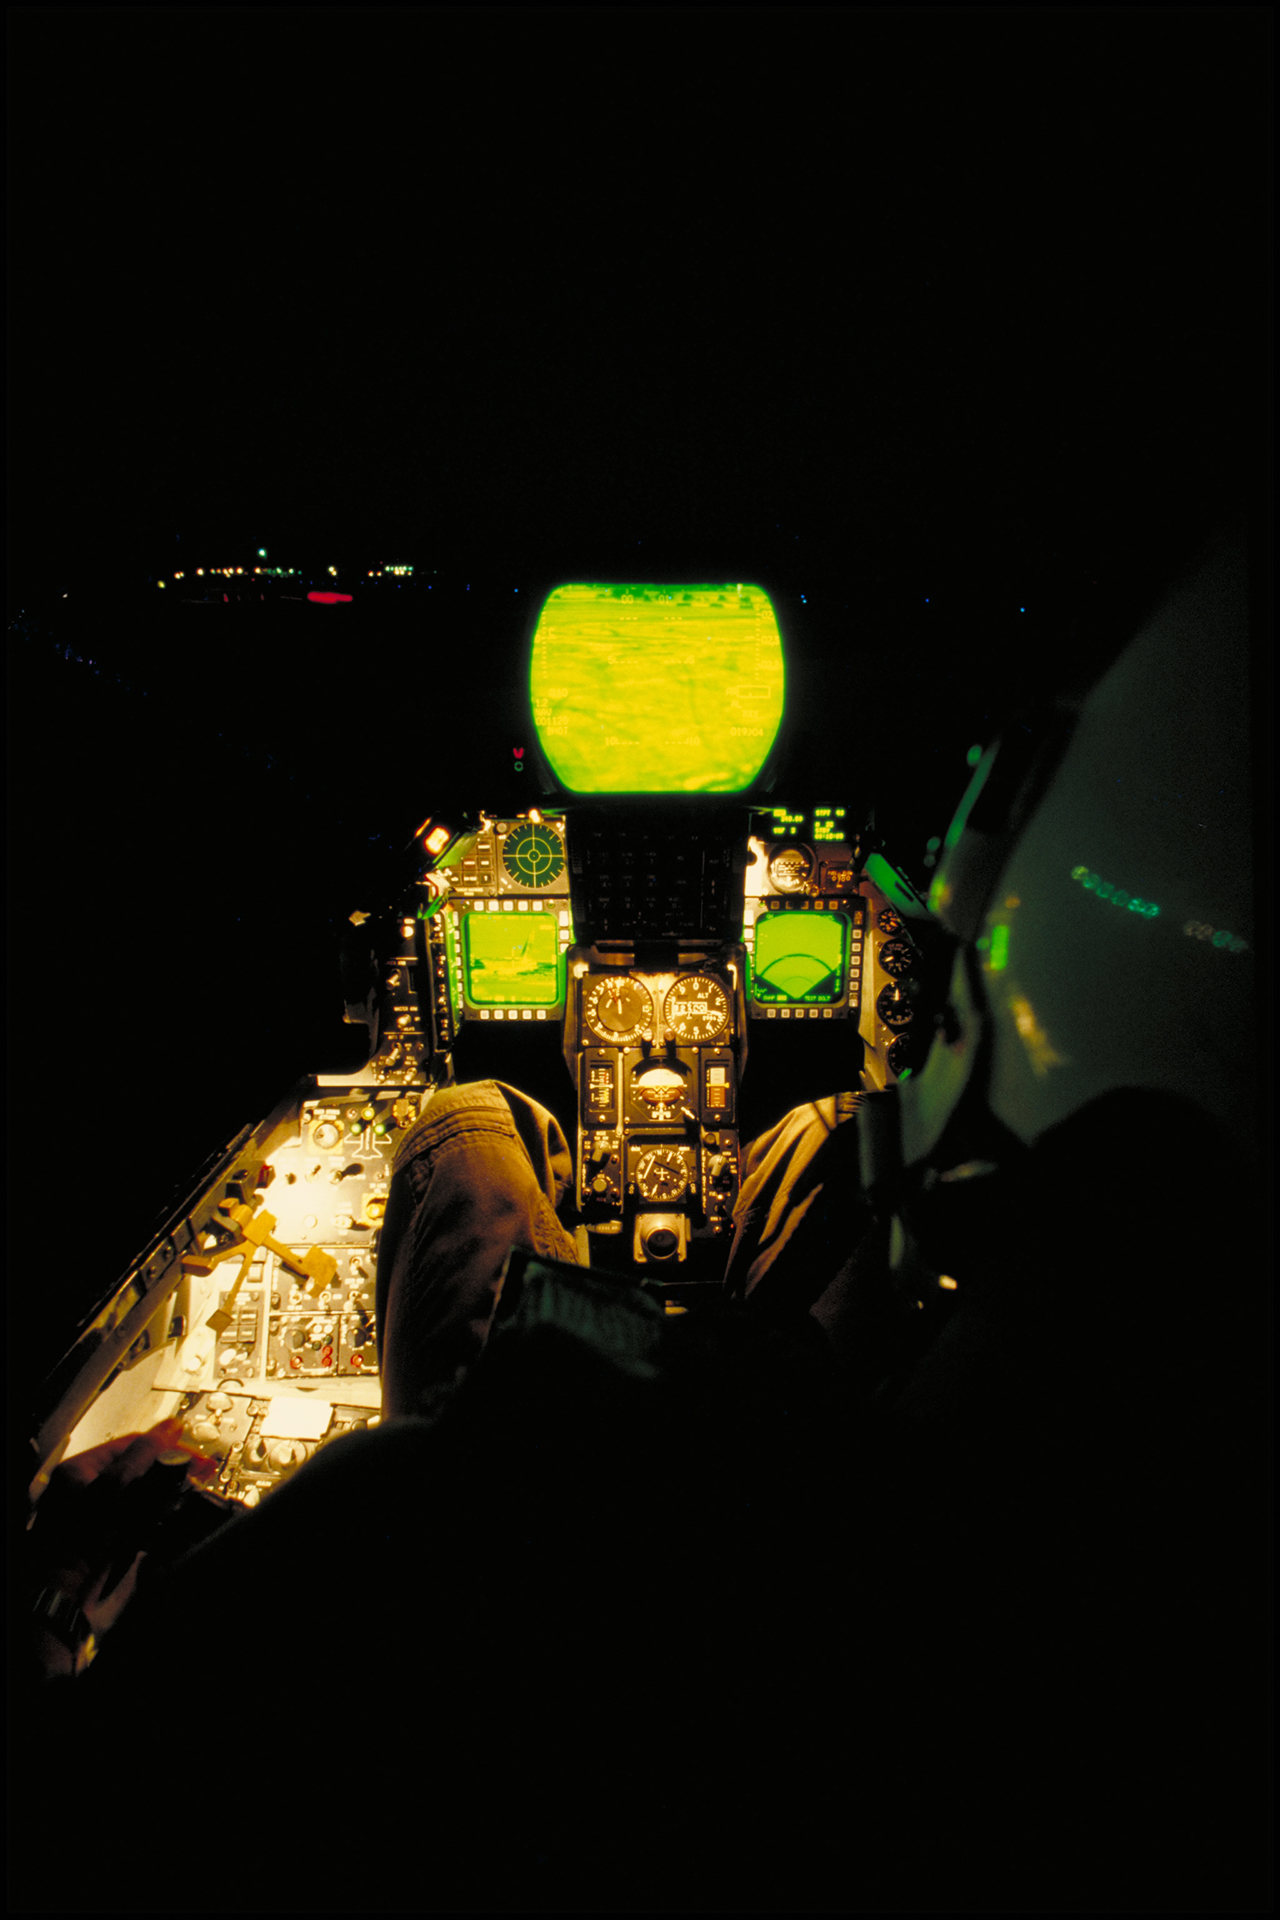 F-16 pilot's view of the LANTIRN screens, flying at night, circa 1985.